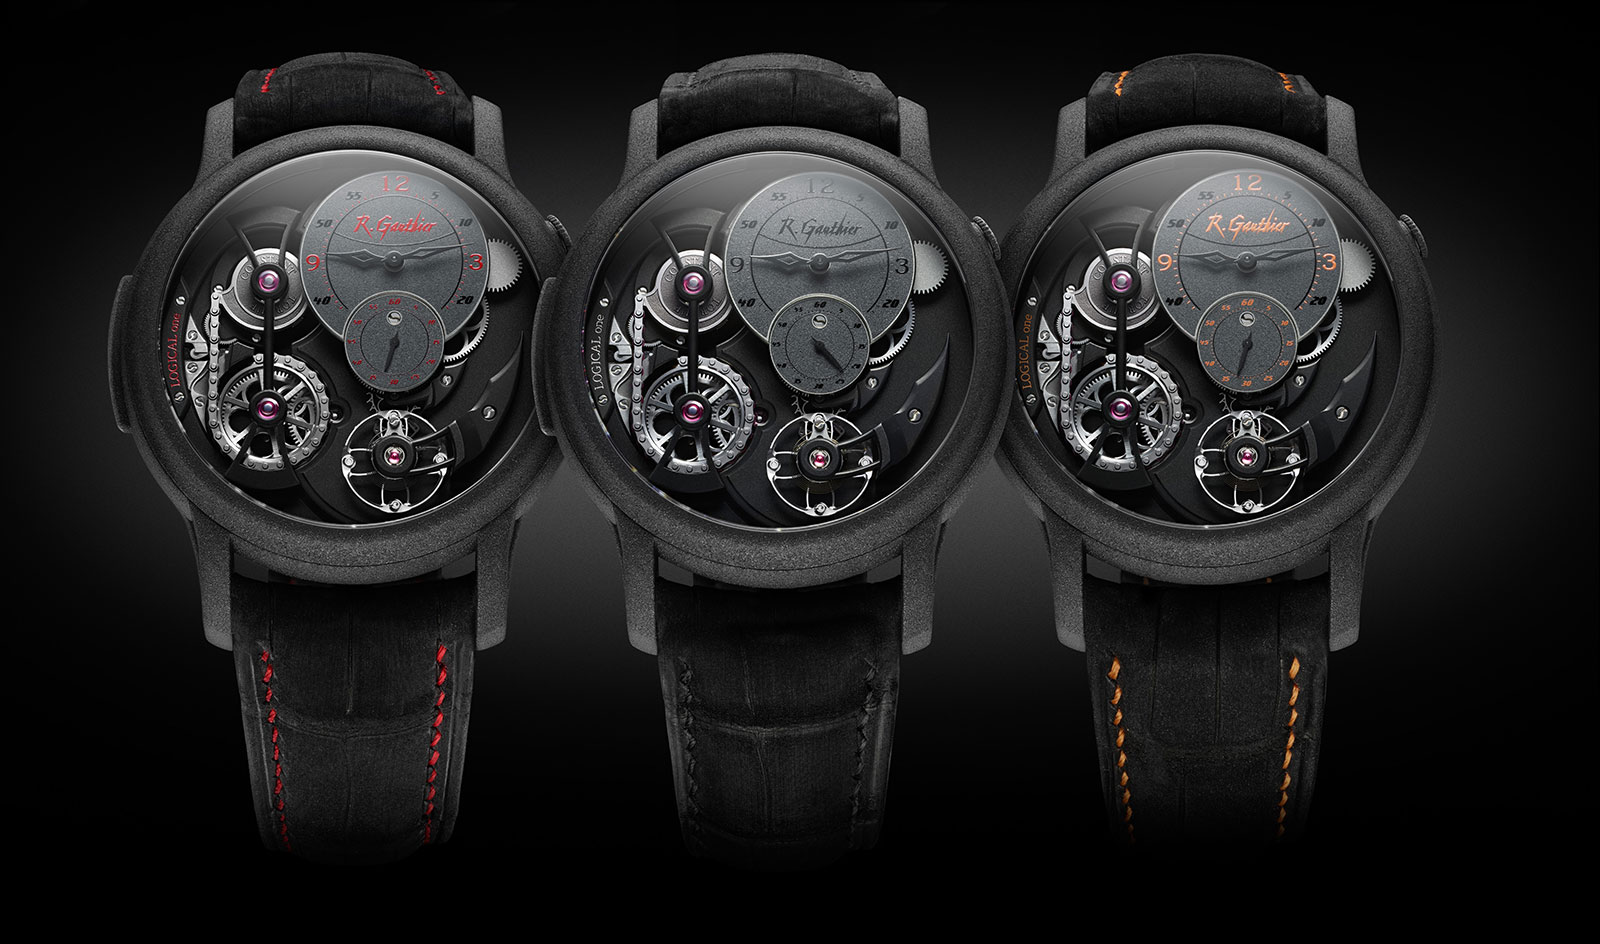 Romain Gauthier Logical One Enraged 4